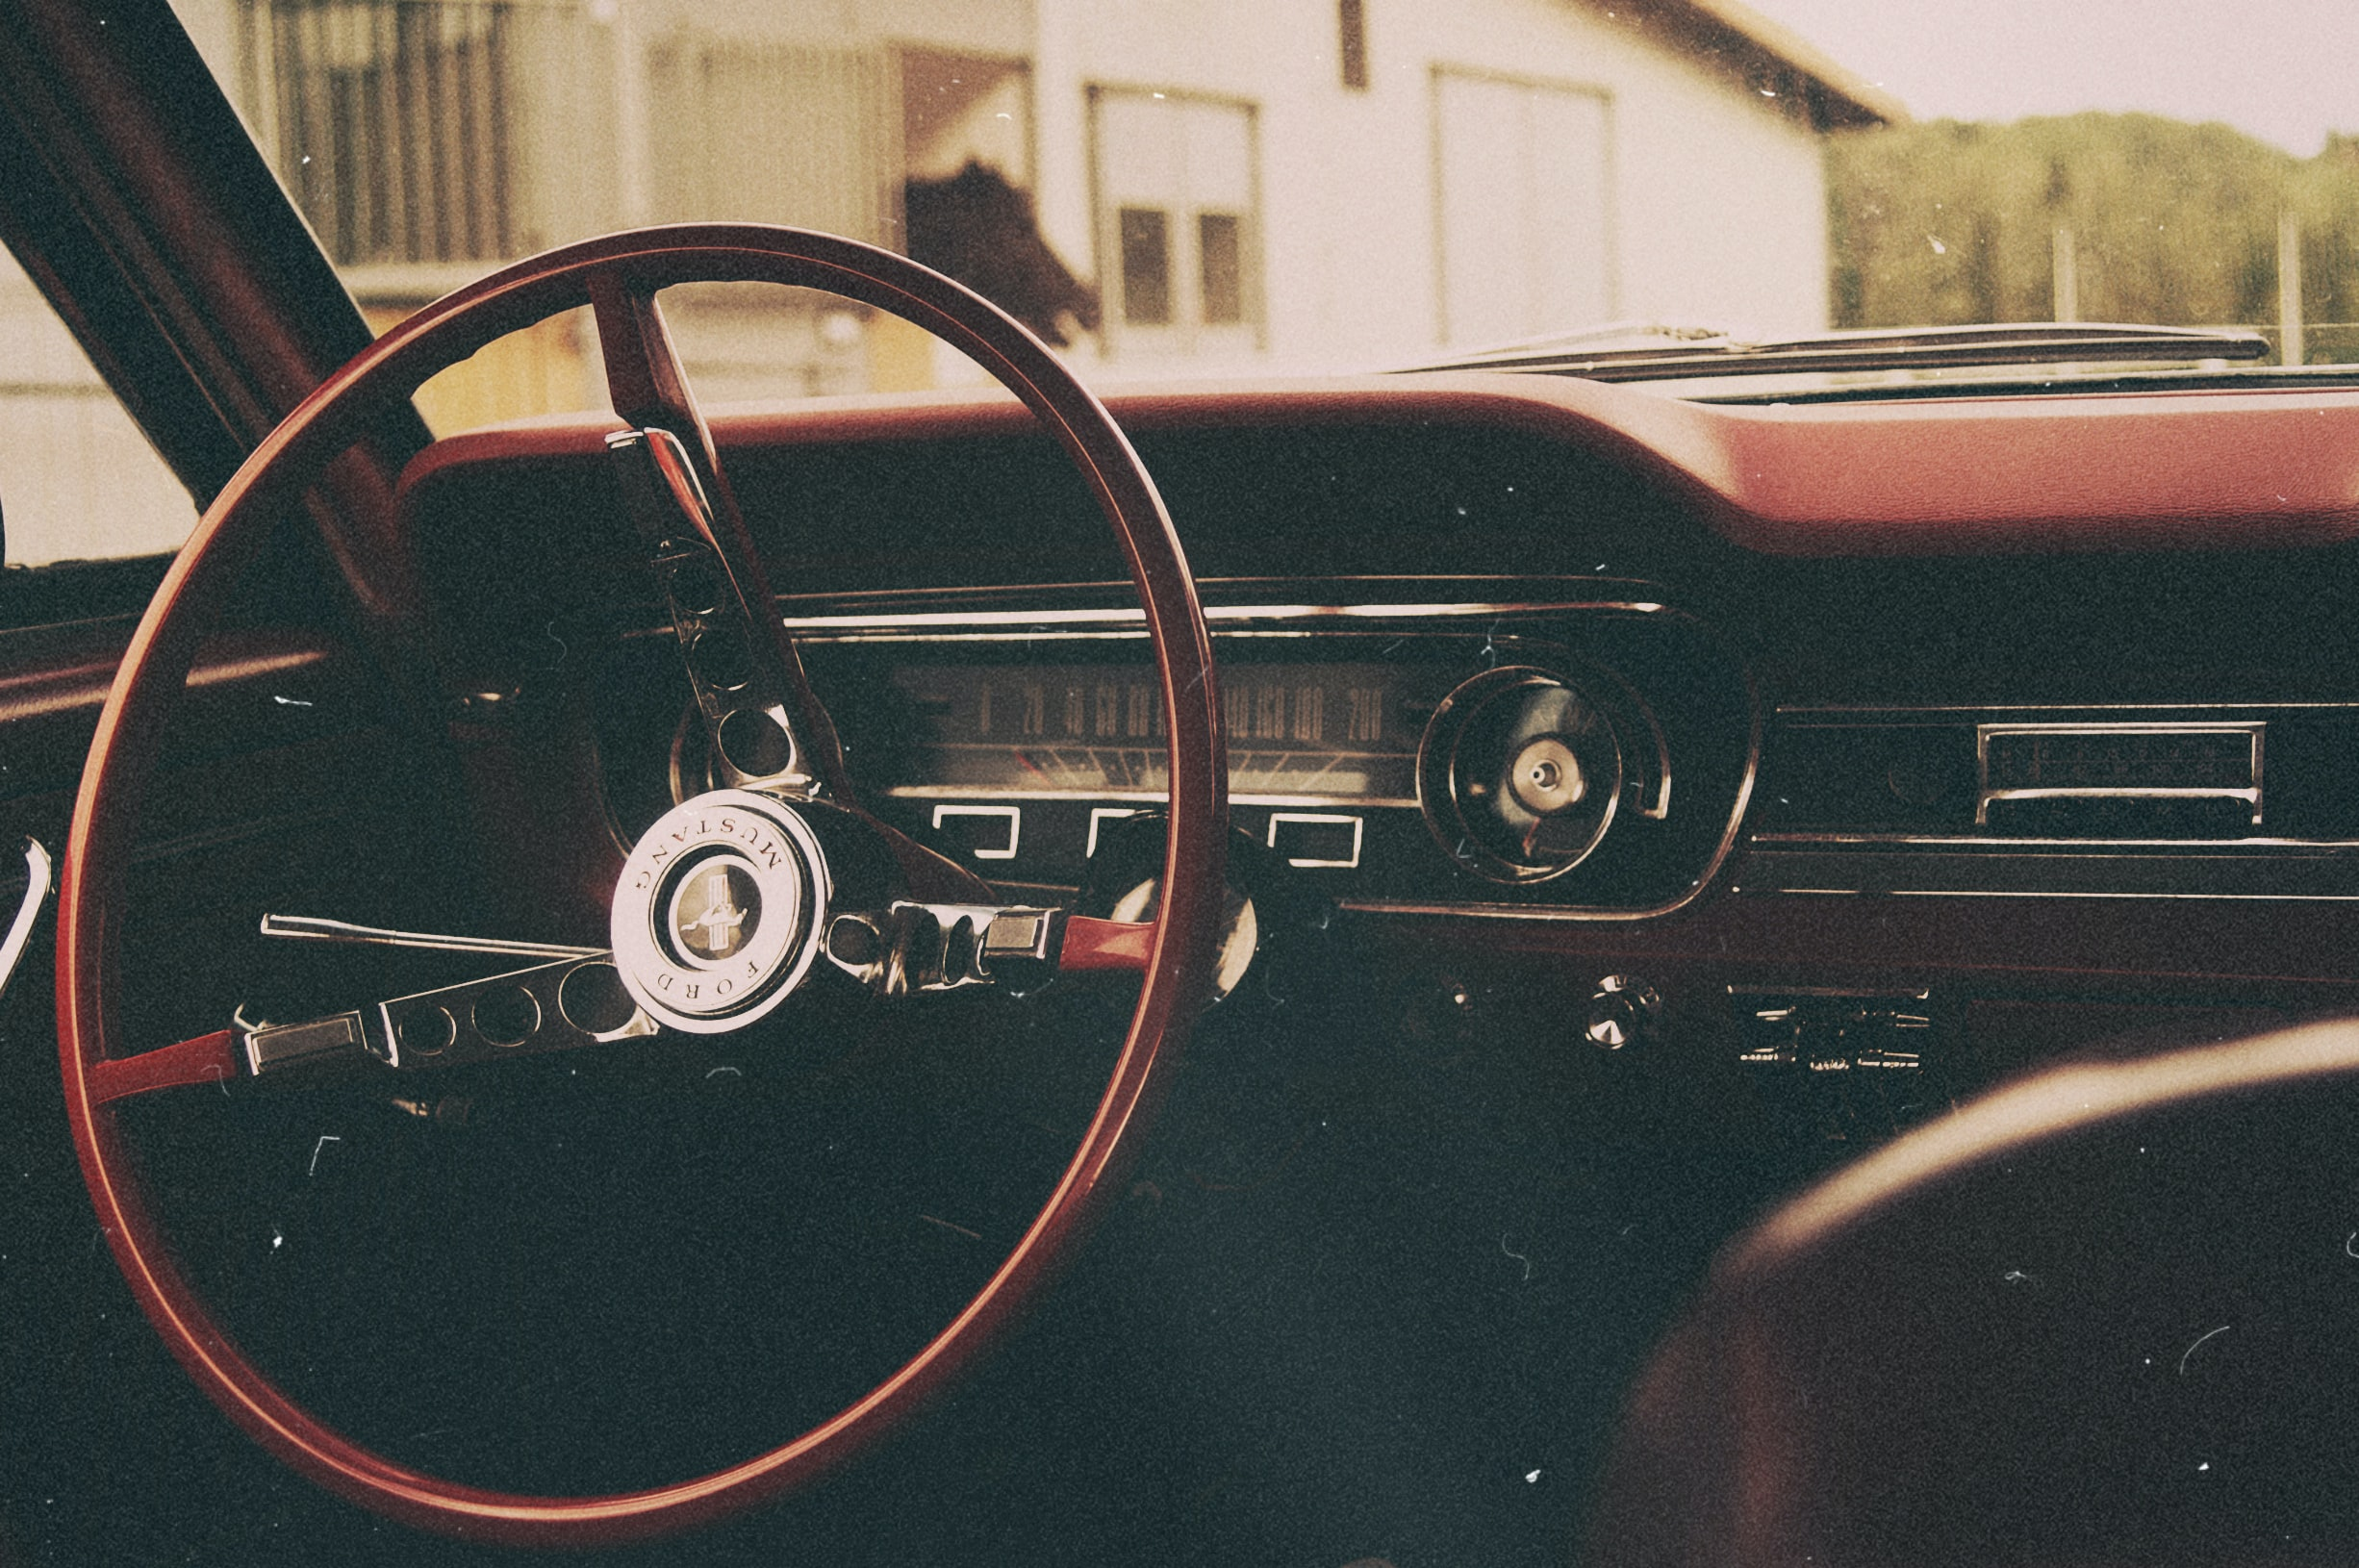 Ford Mustang Vintage Automobile Car Interior Shot Focusing On The Thin  Wheel With A Barn Of